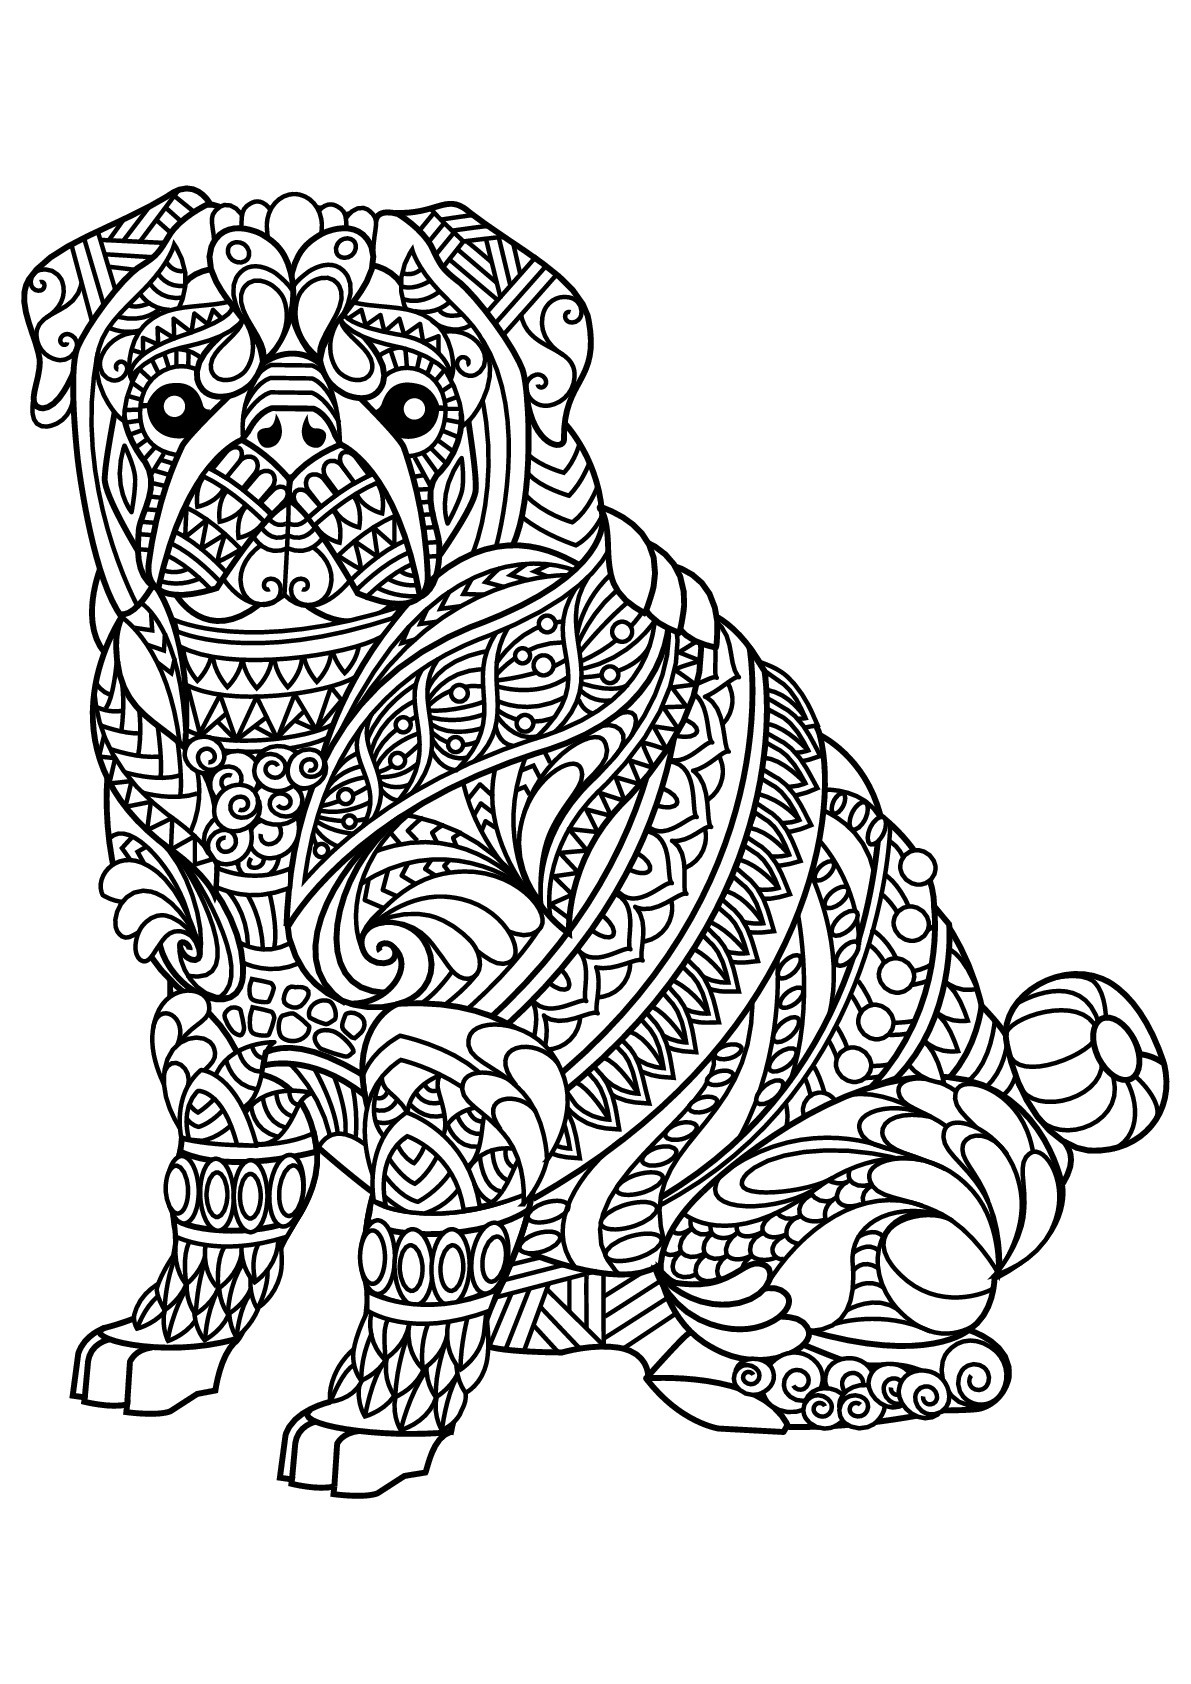 Best ideas about Coloring Pages For Adults Dogs . Save or Pin Free book dog bulldog Dogs Adult Coloring Pages Now.